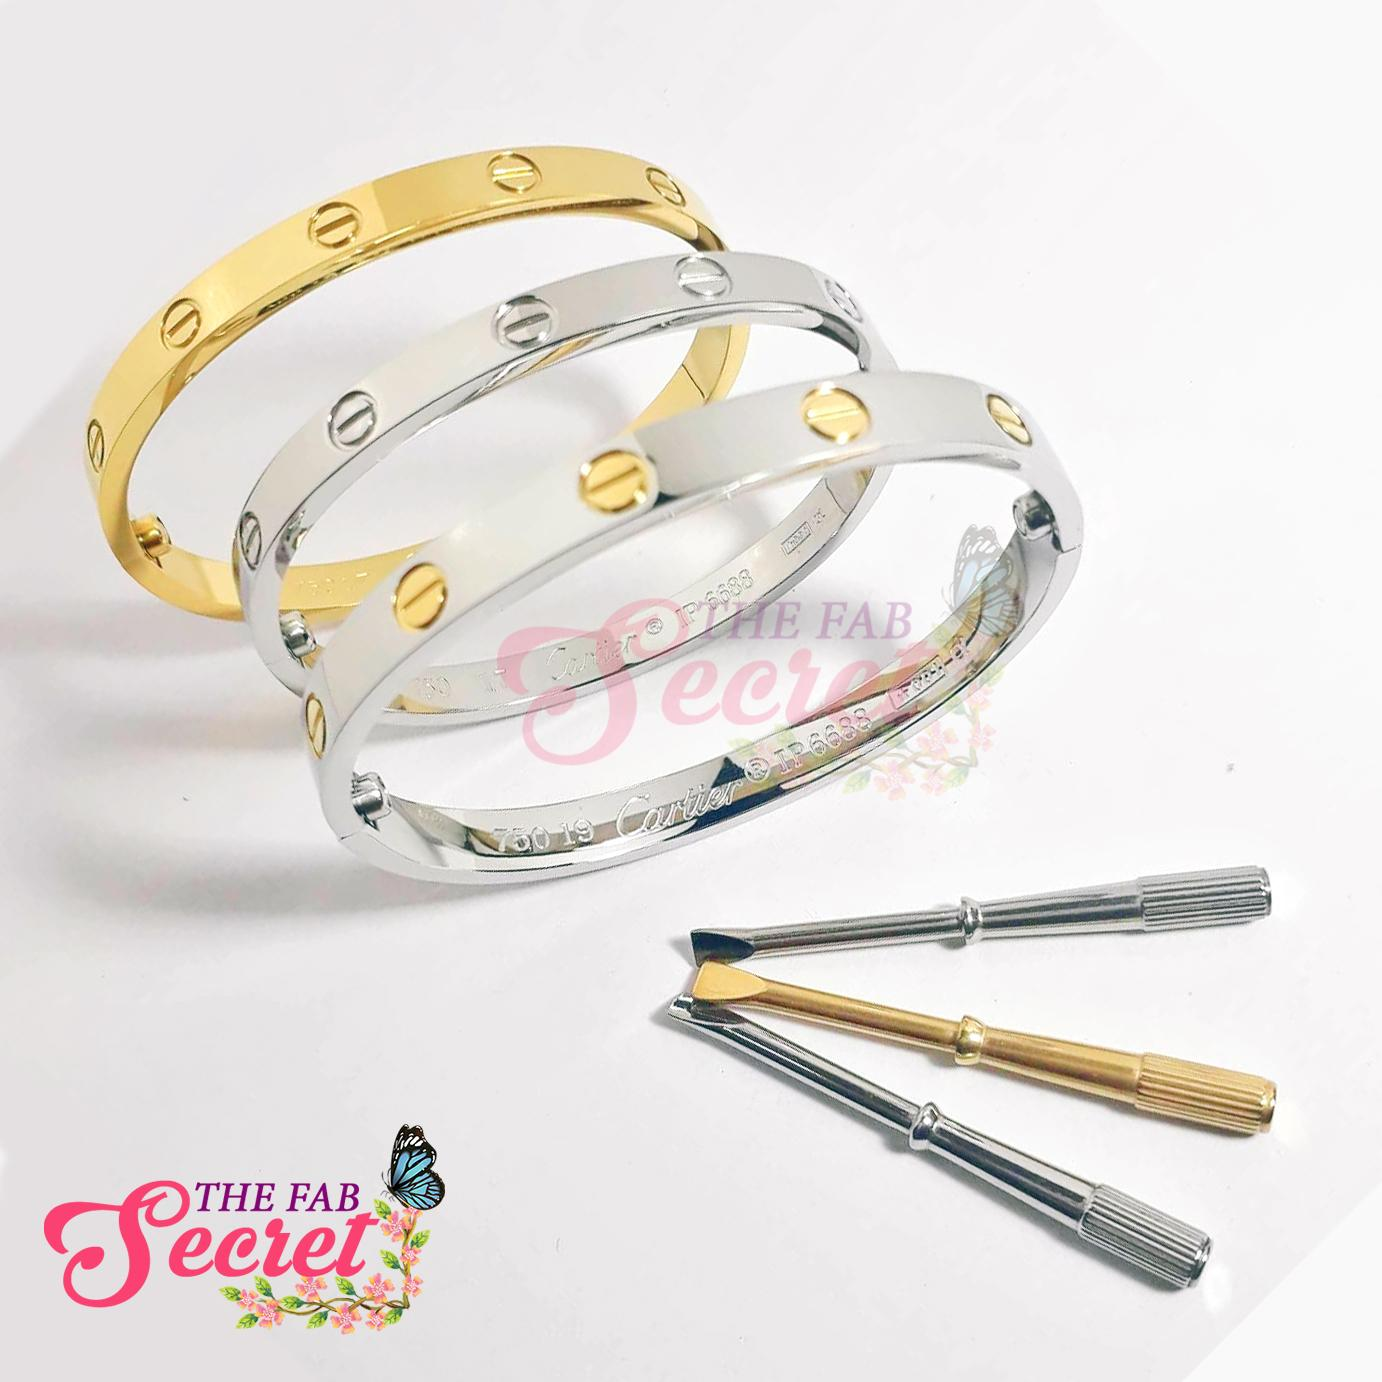 33338a30a4ac8 BIG SALE TFS High Quality Stainless Steel Love Bangle w/ Screw, Classic  Design, Fashionable, Elegant, Ideal Gift for Any Occasion, Unisex, Elegant  ...